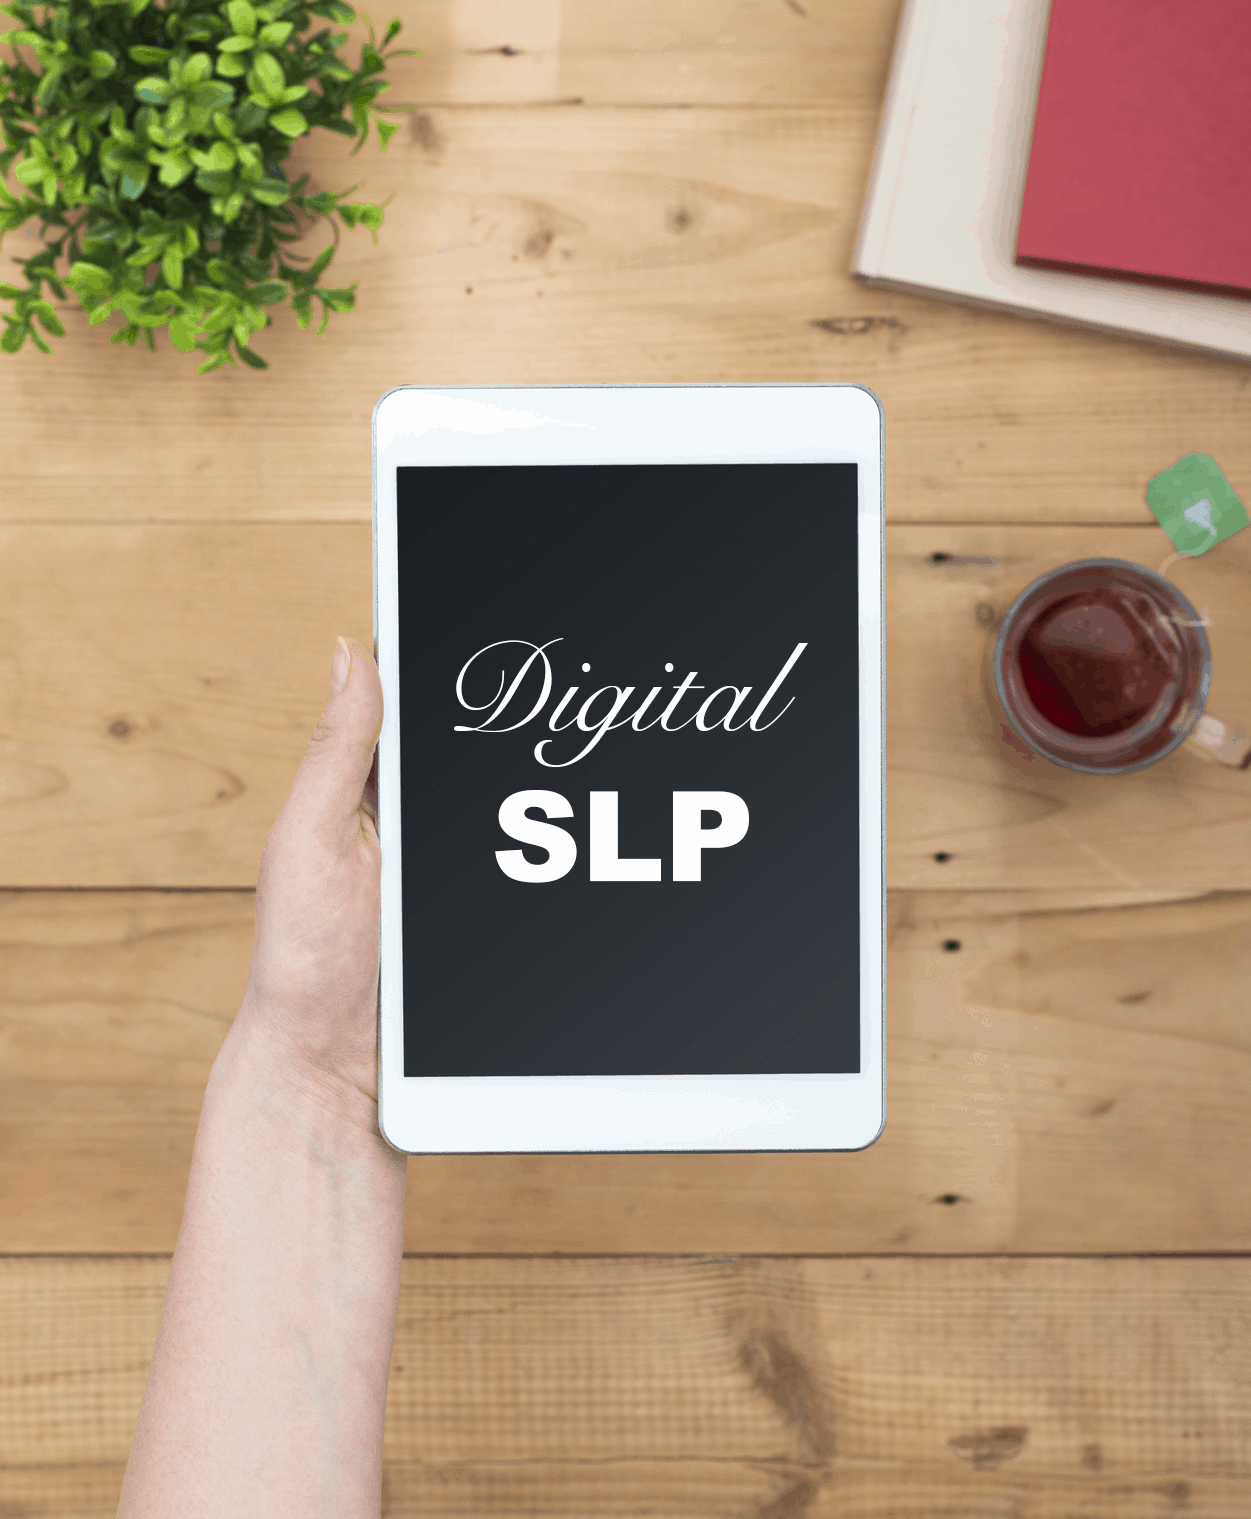 Digital SLP